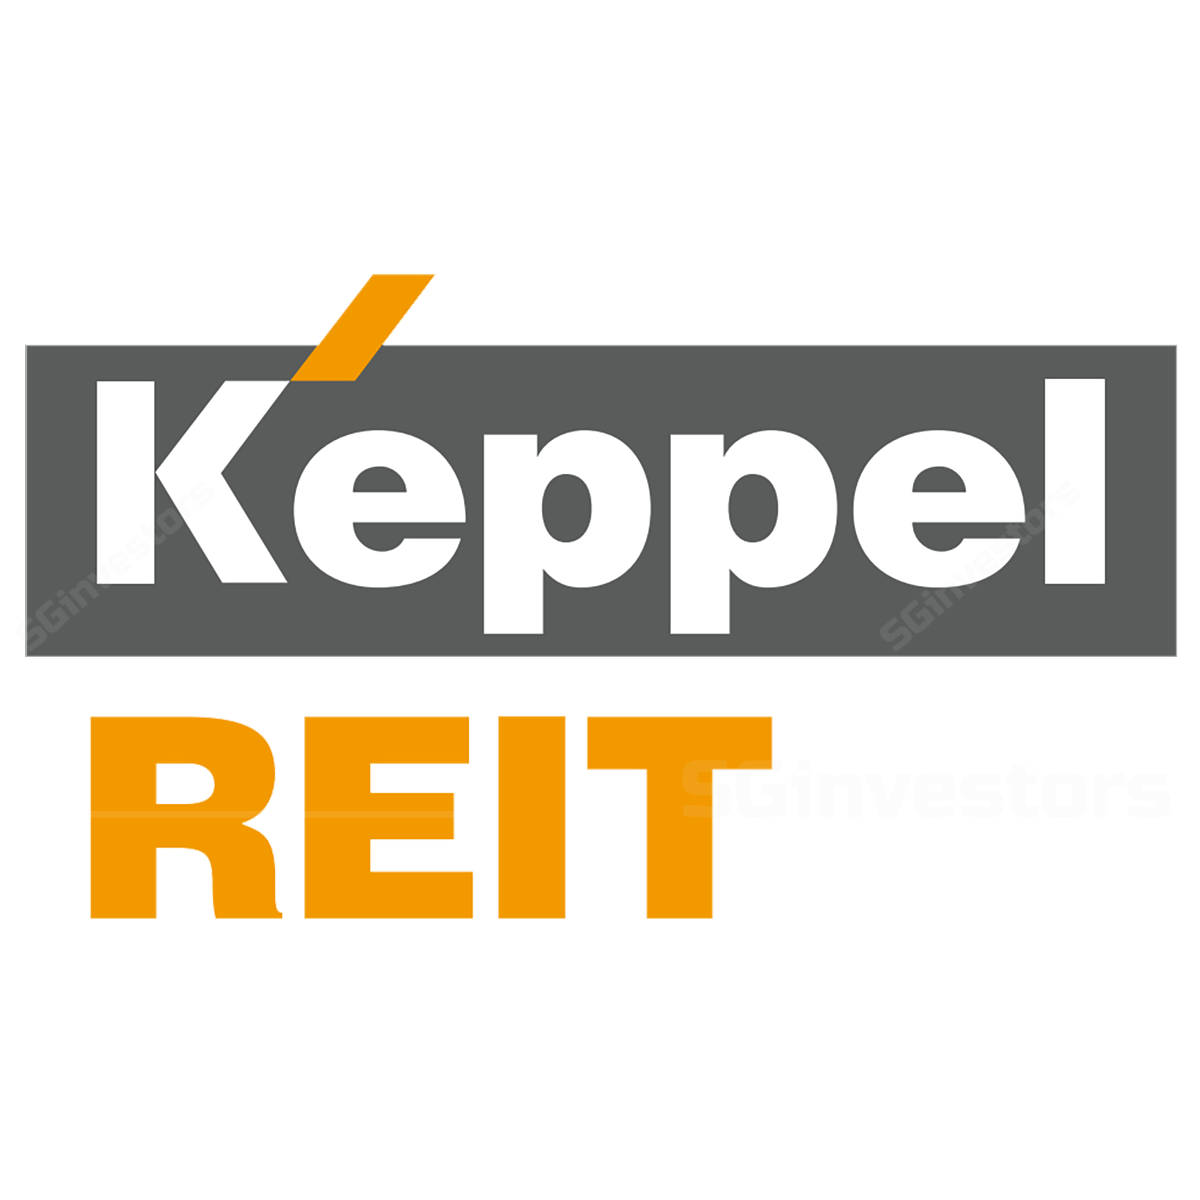 Keppel REIT - DBS Vickers 2017-01-25: Still cheap despite disappointments